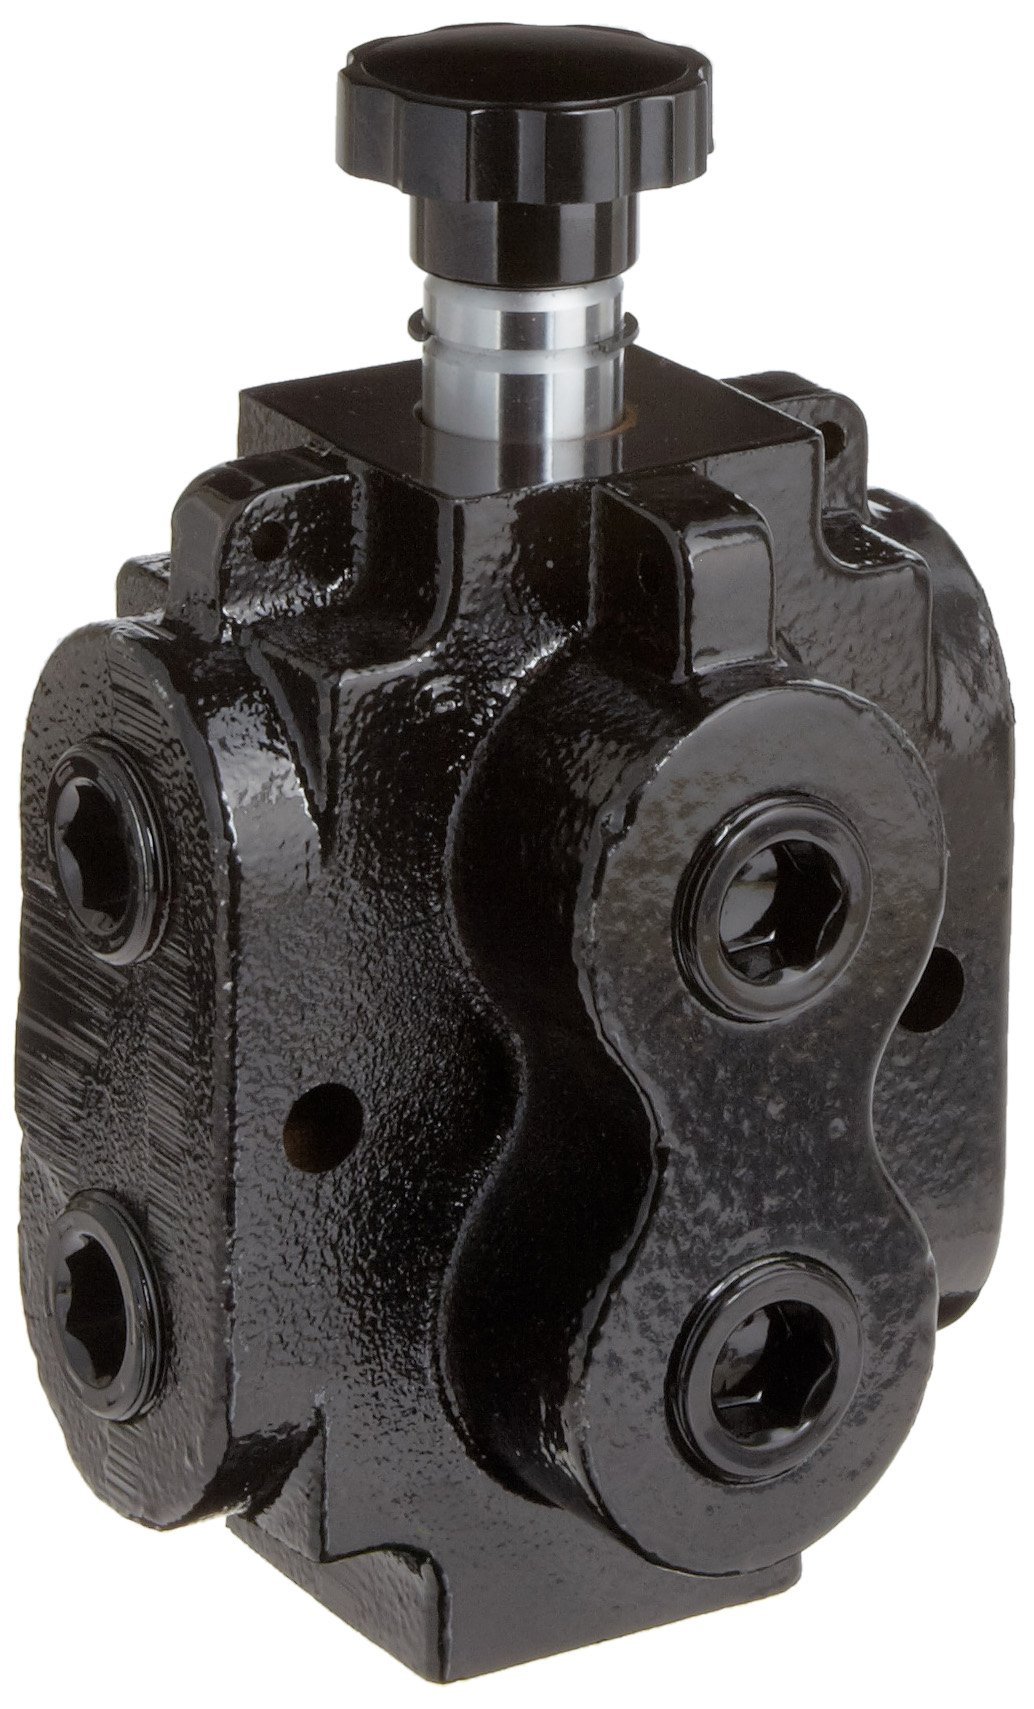 Prince DS-4A1D Directional Control Valve, Monoblock, Cast Iron, 1 Spool, 6 Ways, 2 Positions, Knob Handle, 2500 psi, 40 gpm, 3/4'' NPT Female by Prince Manufacturing (Image #1)